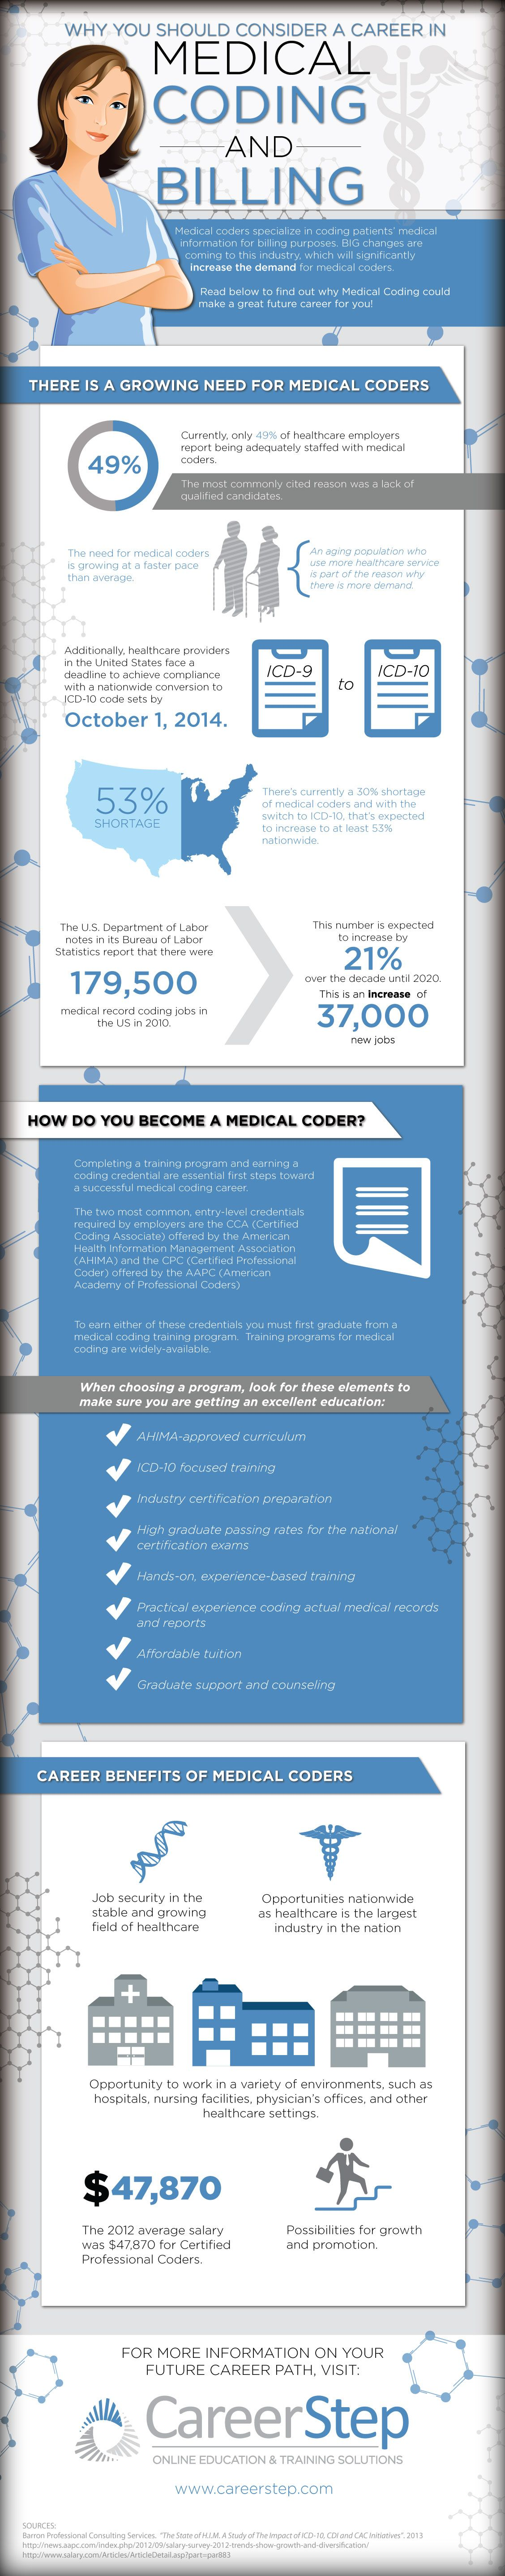 State of the medical coding and billing industry infographic state of the medical coding and billing industry infographic xflitez Gallery